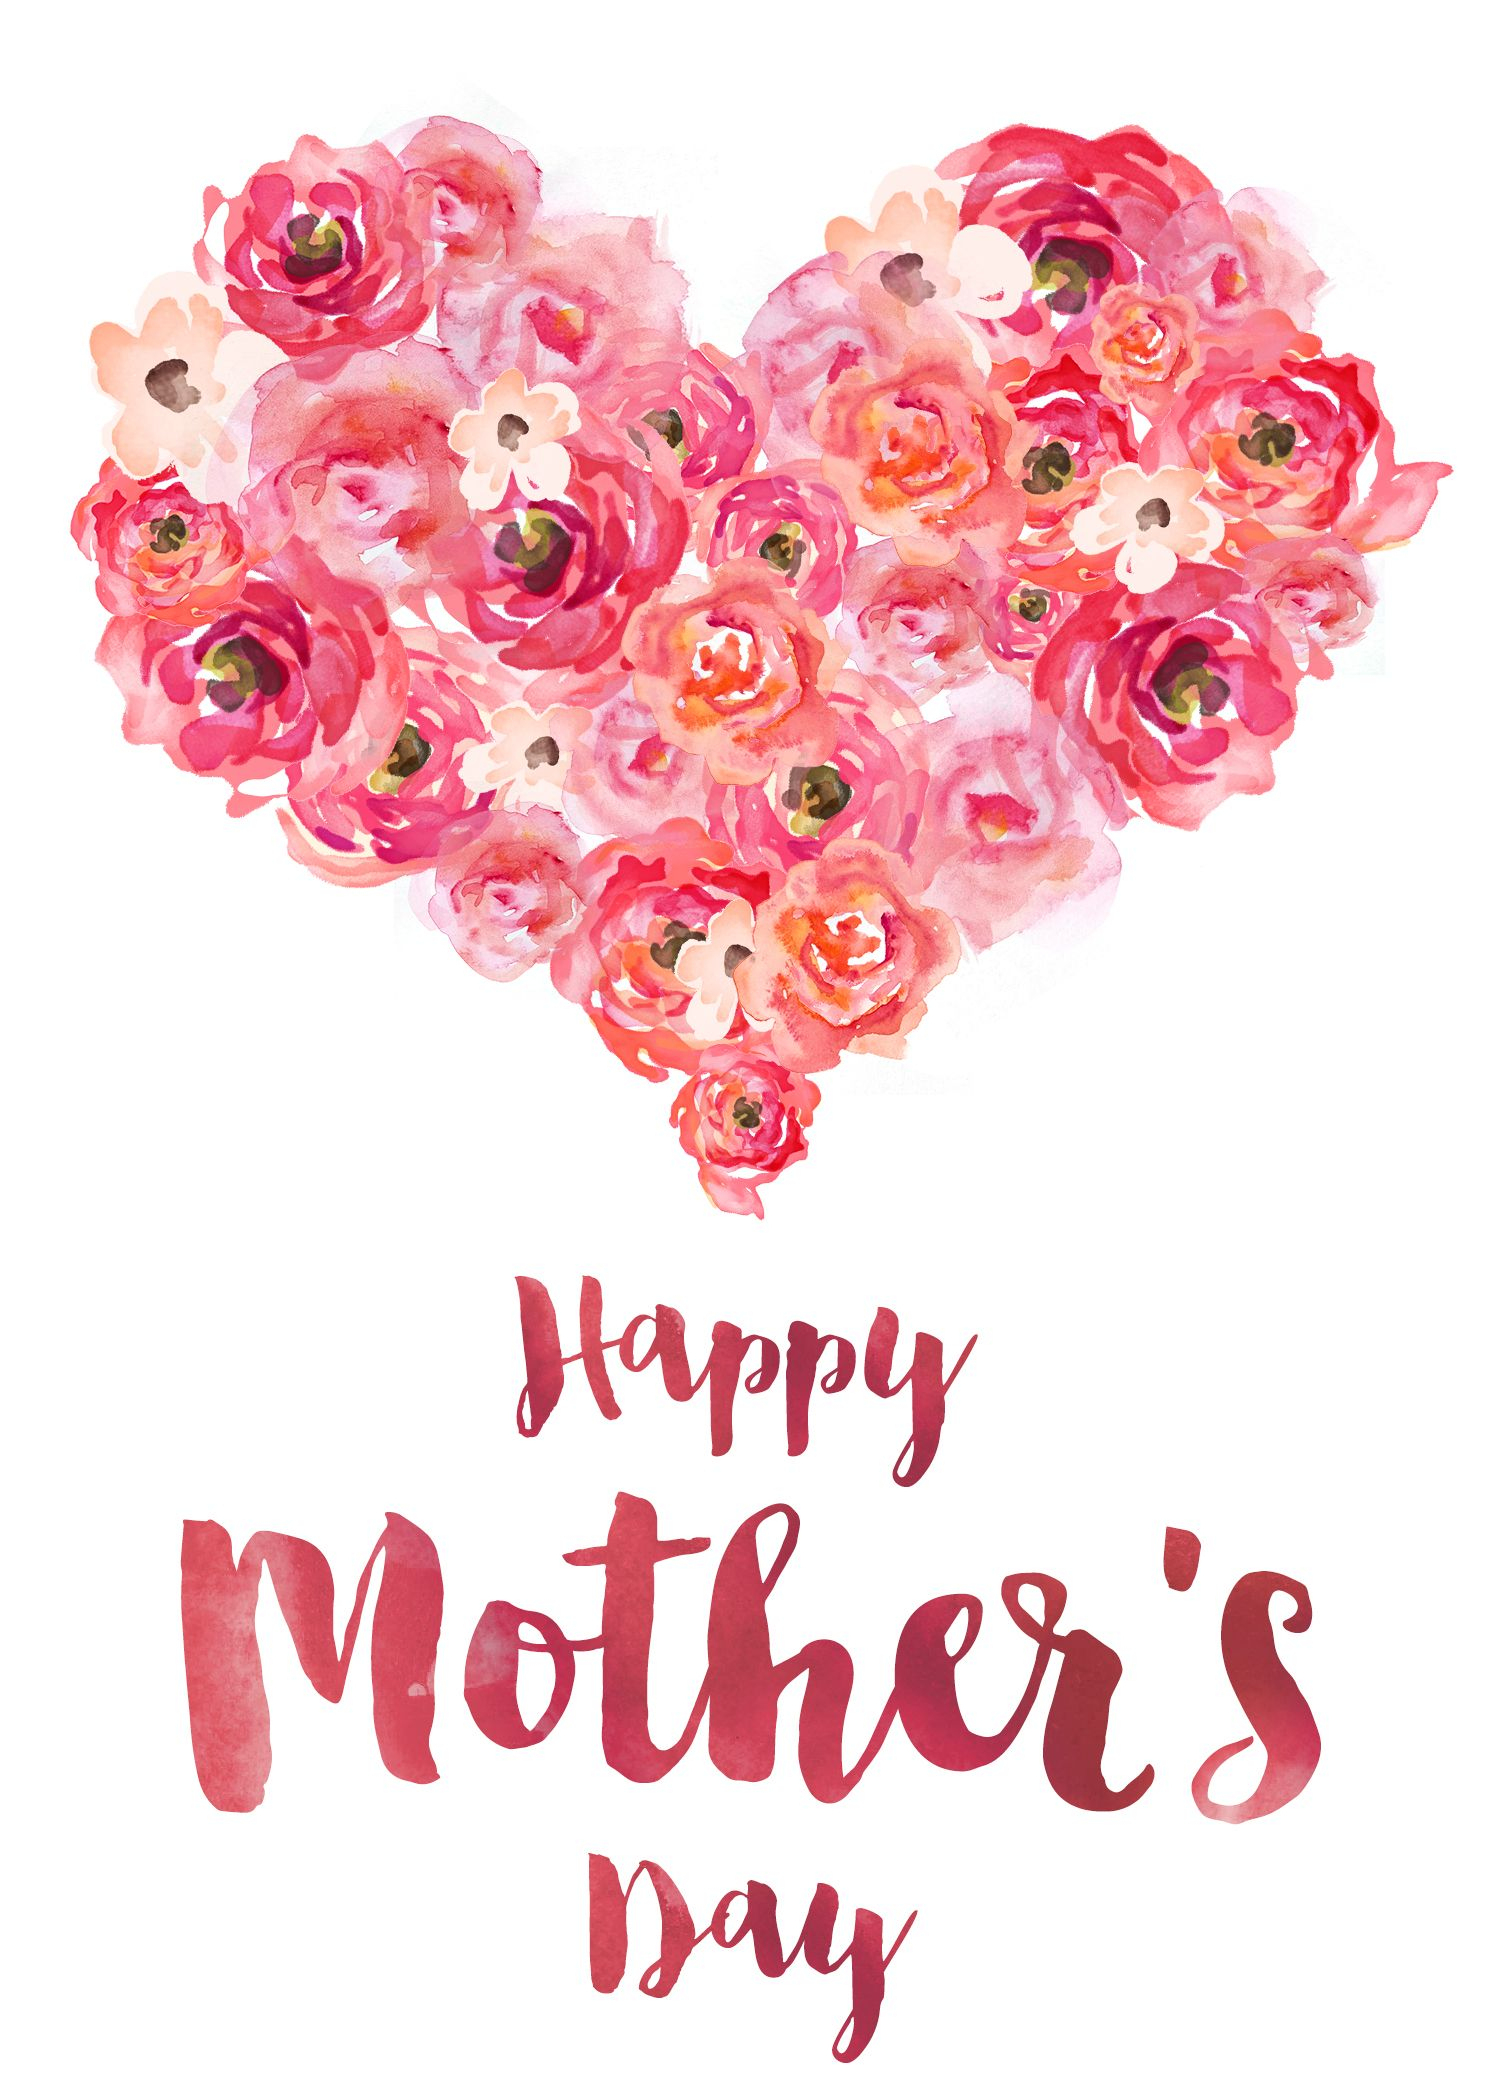 Customized Banner | Share Your Heart | Mothers Day Images, Happy - Free Spanish Mothers Day Cards Printable